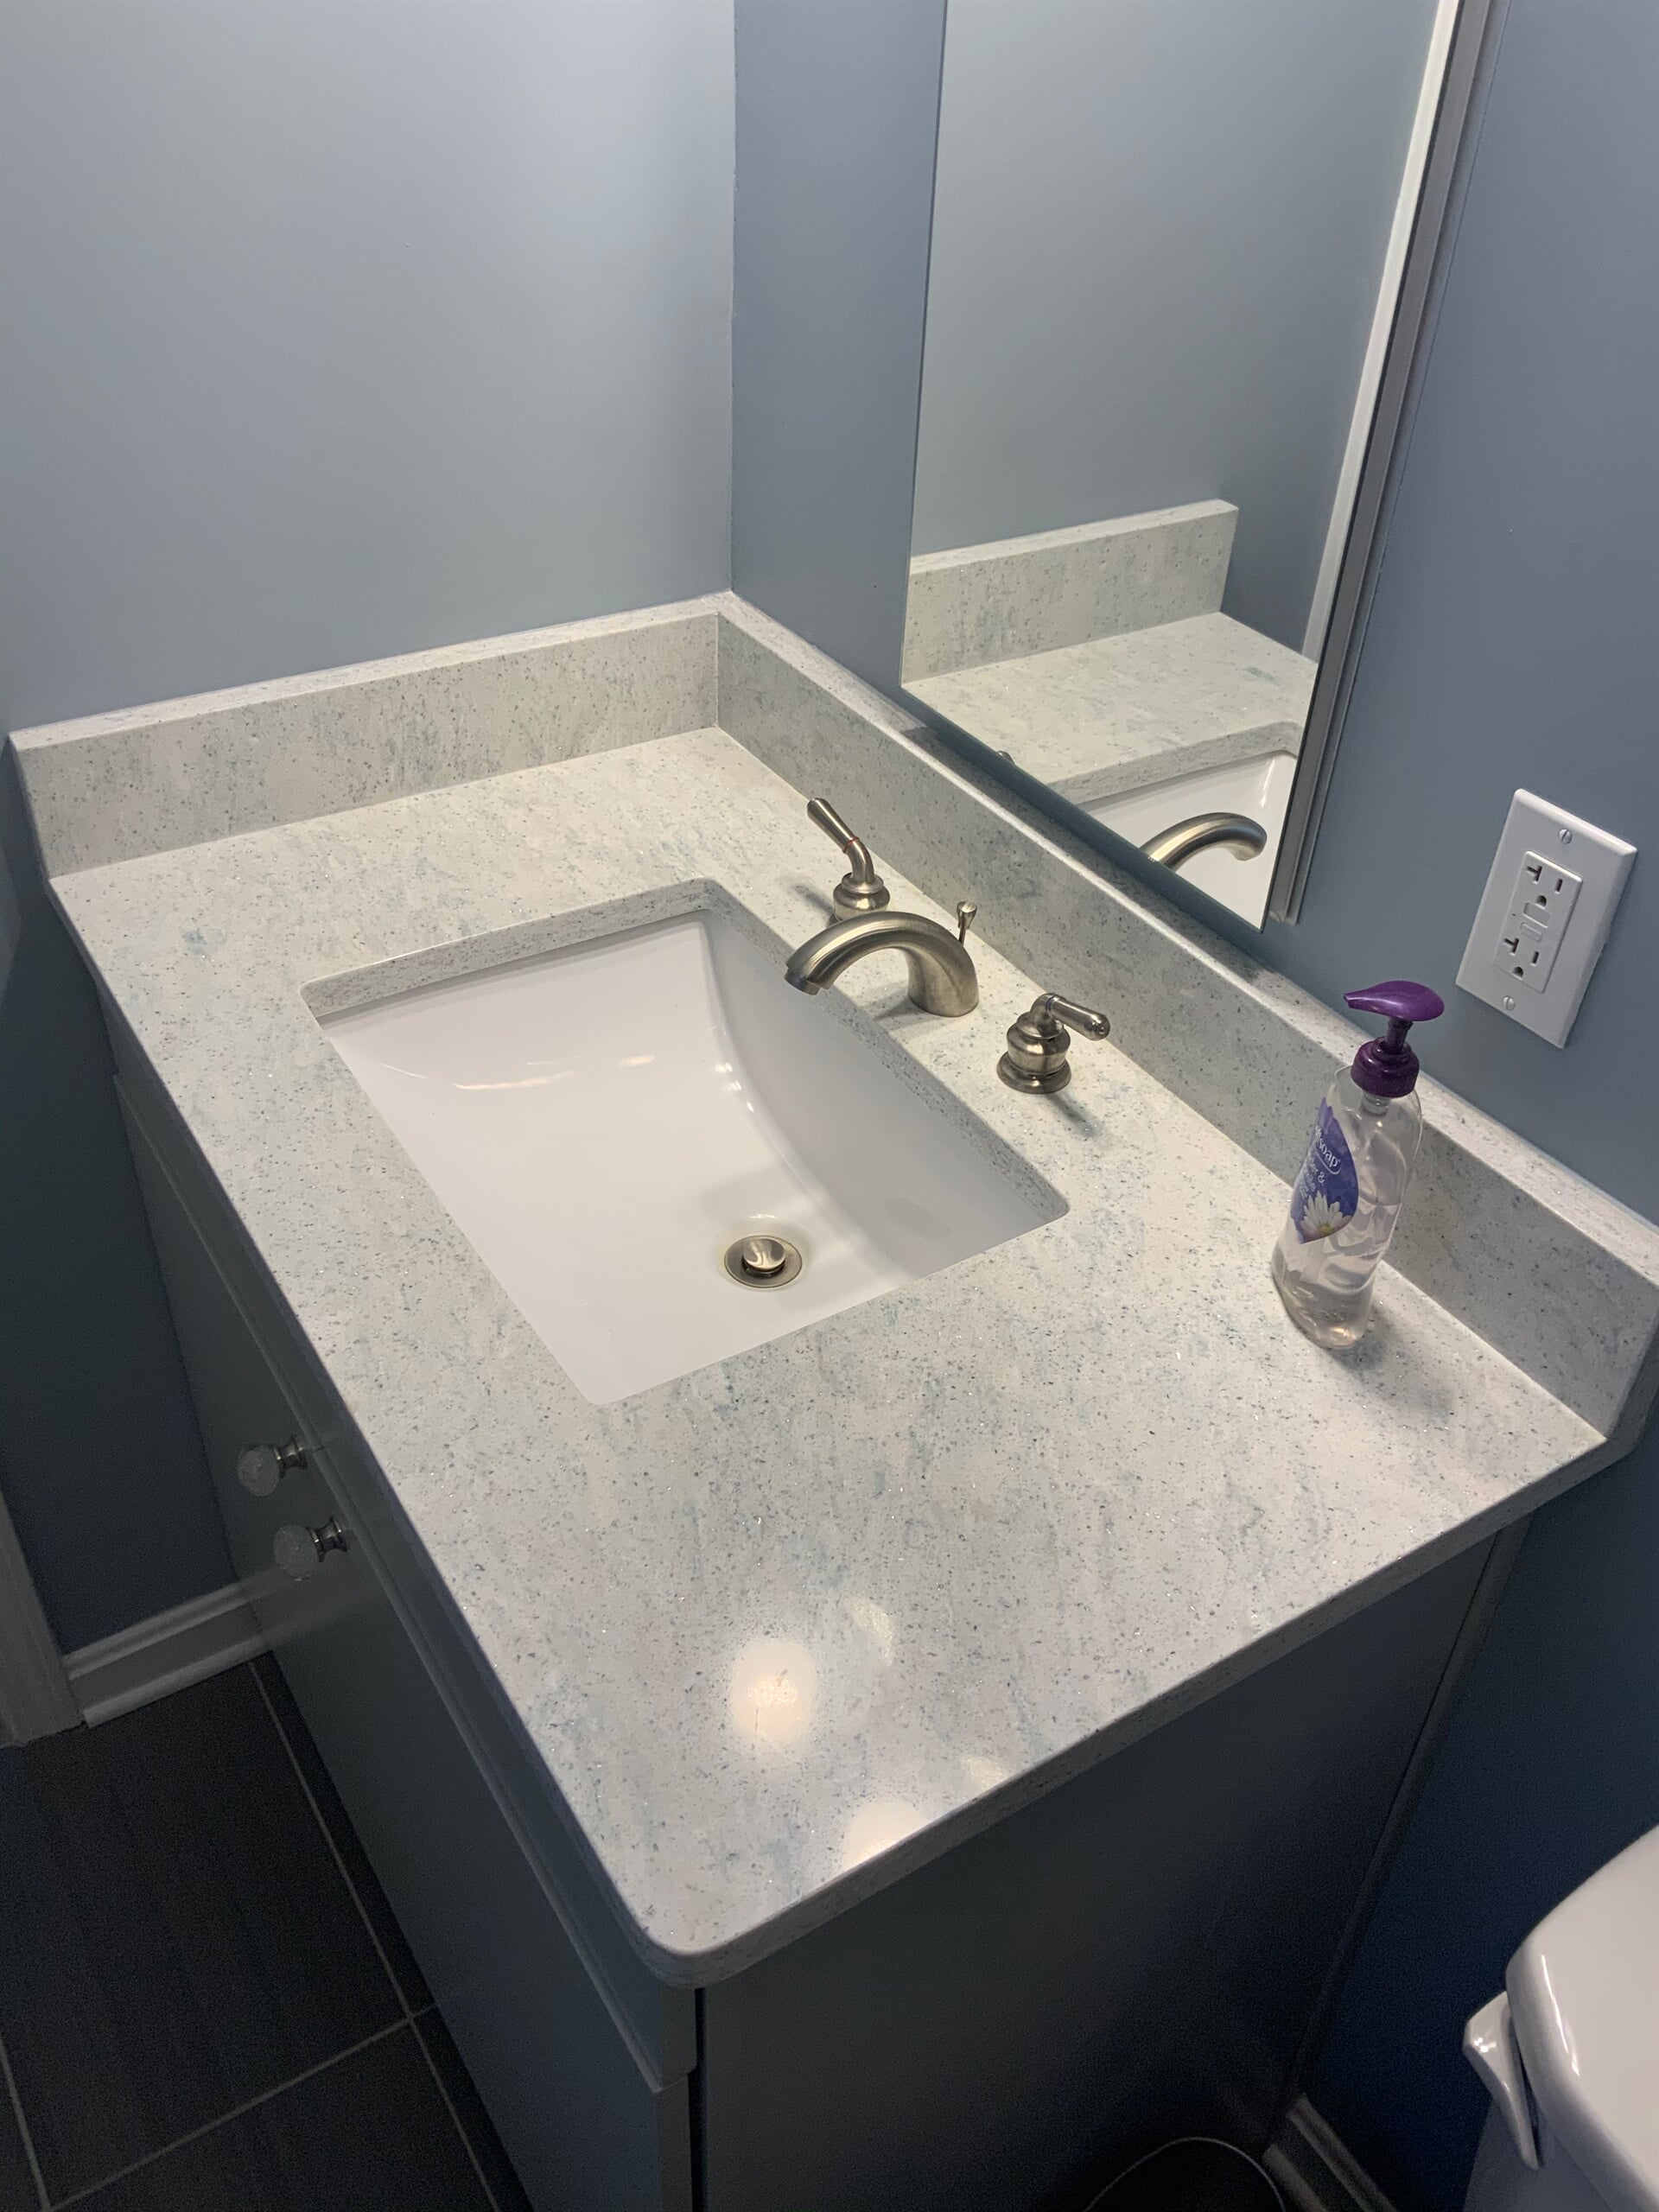 Bathroom remodeling in Lexington park, MD by Southern Maryland Kitchen Bath Floors & Design